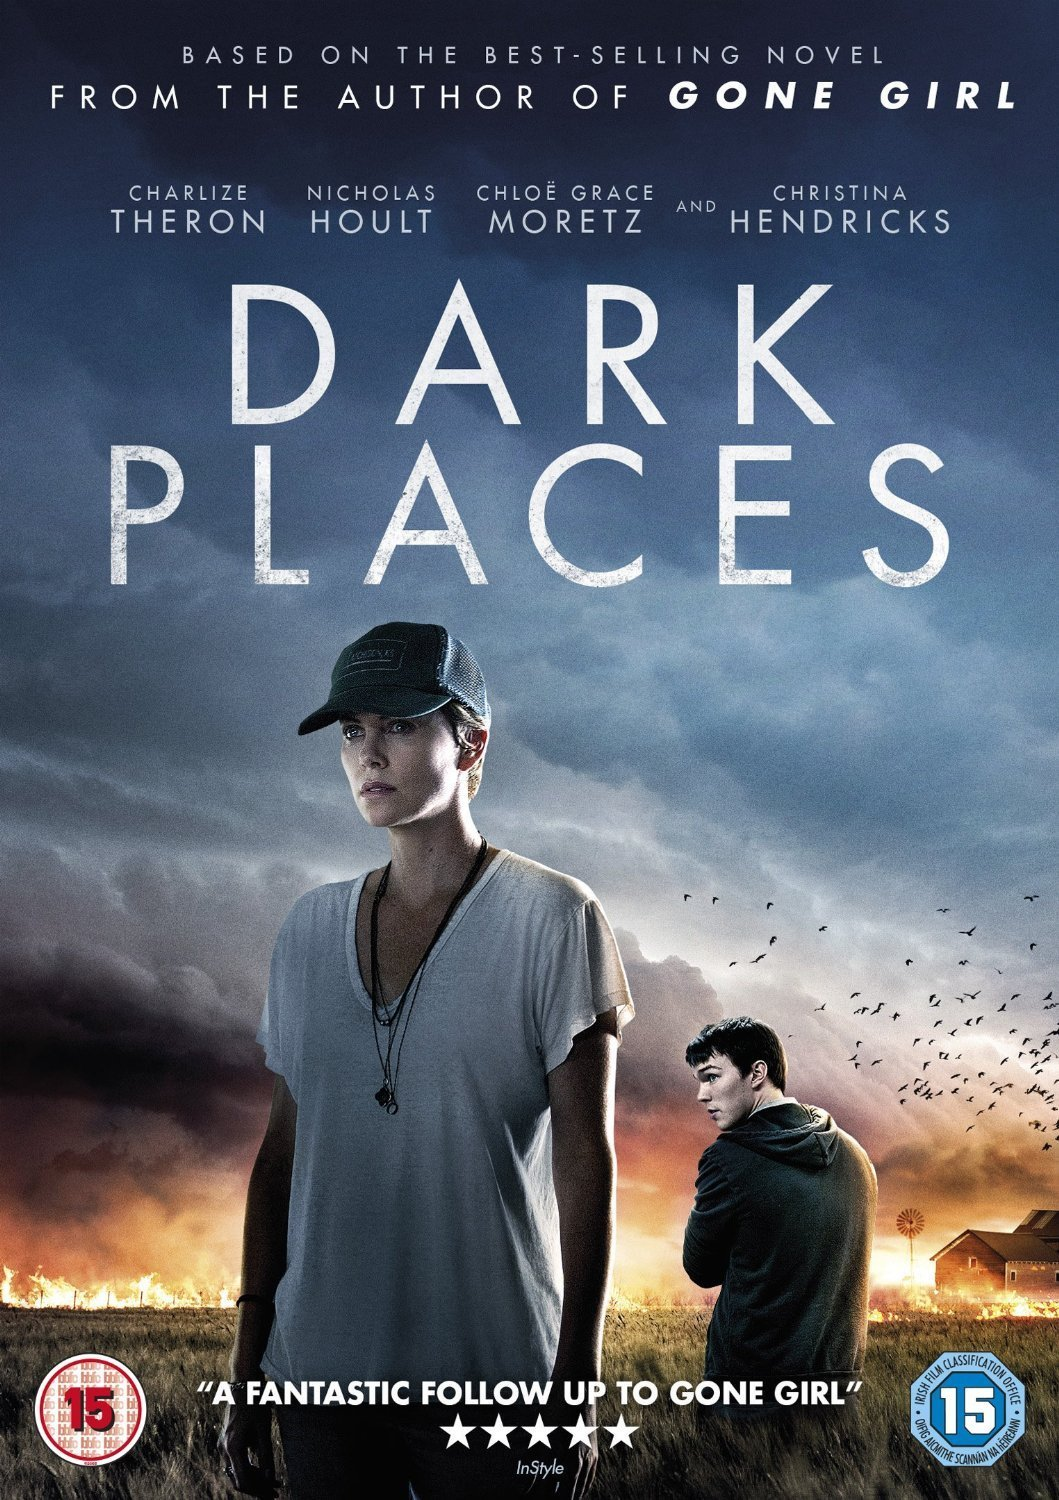 Dark Places by Gillian Flynn adapted into a movie starring Charlize Theron and Nicholas Hoult